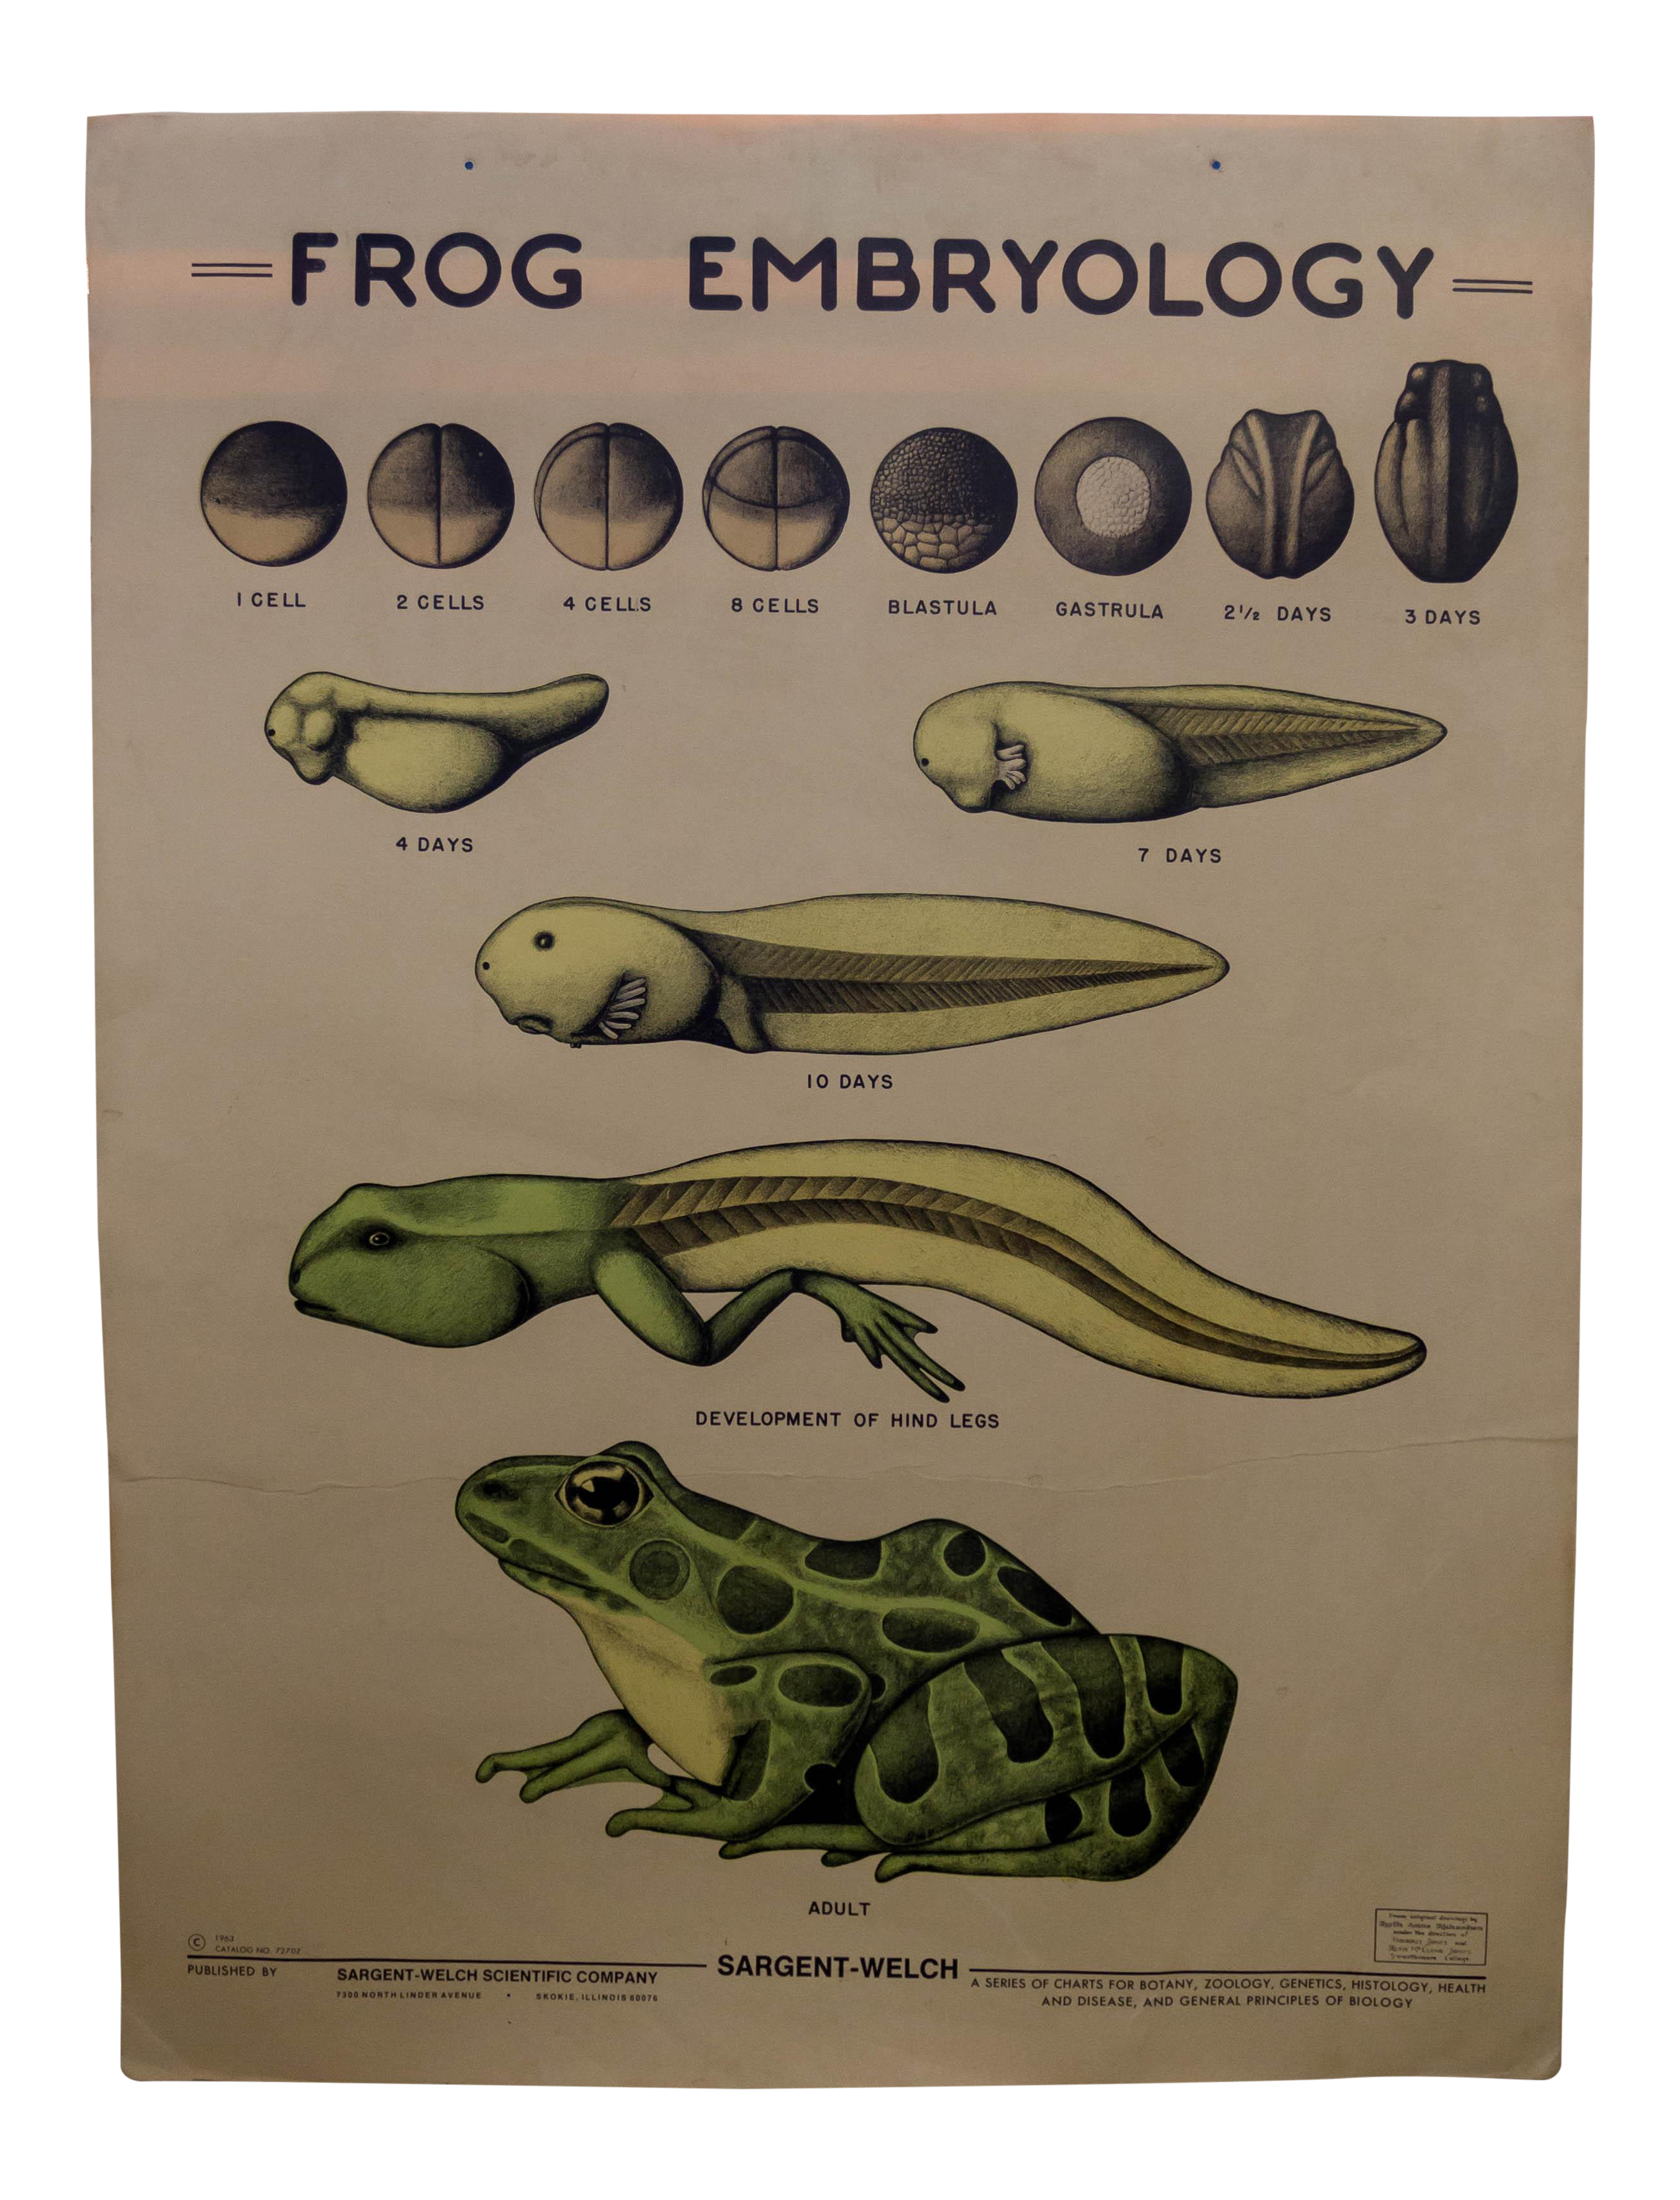 embryology of the frog Another way to look at serially sectioned frog and chick embryos what we show here is the first part of a project we call 4-d embryology--embryos in three dimensions and their changes over time.